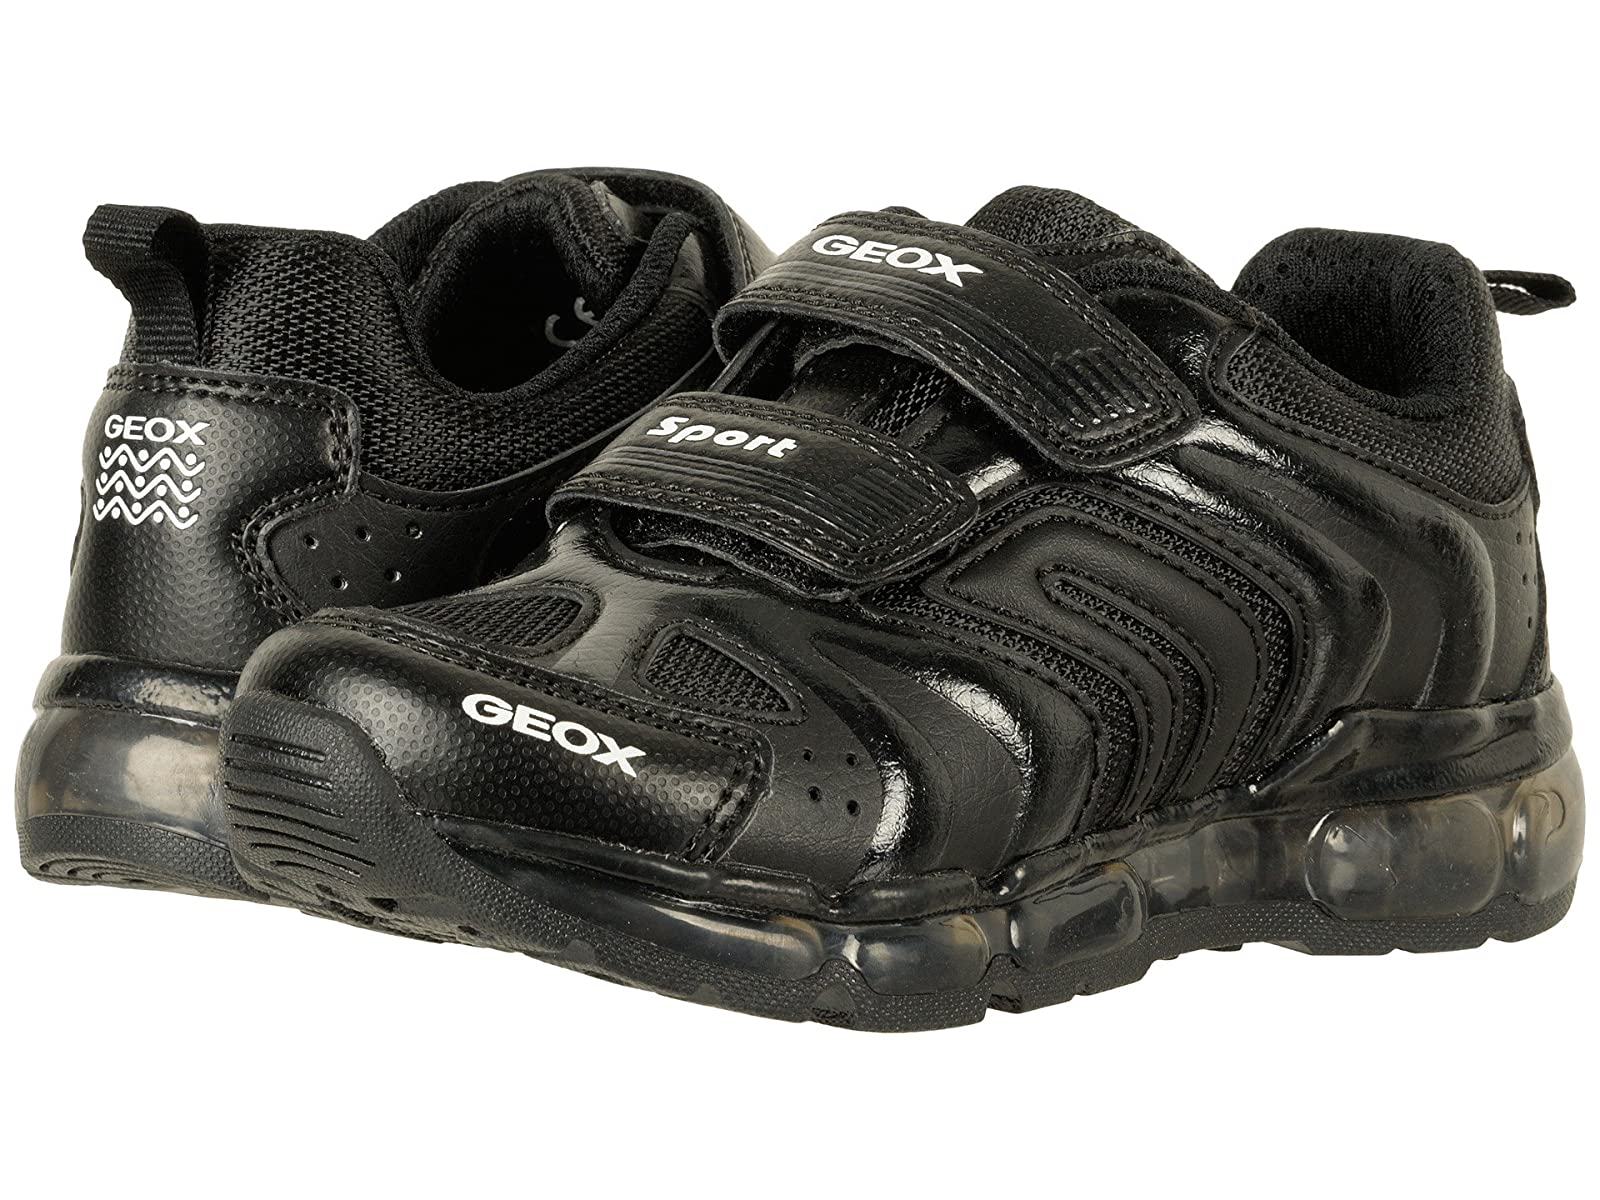 Geox Kids Jr Android Boy 9 (Toddler/Little Kid)Cheap and distinctive eye-catching shoes